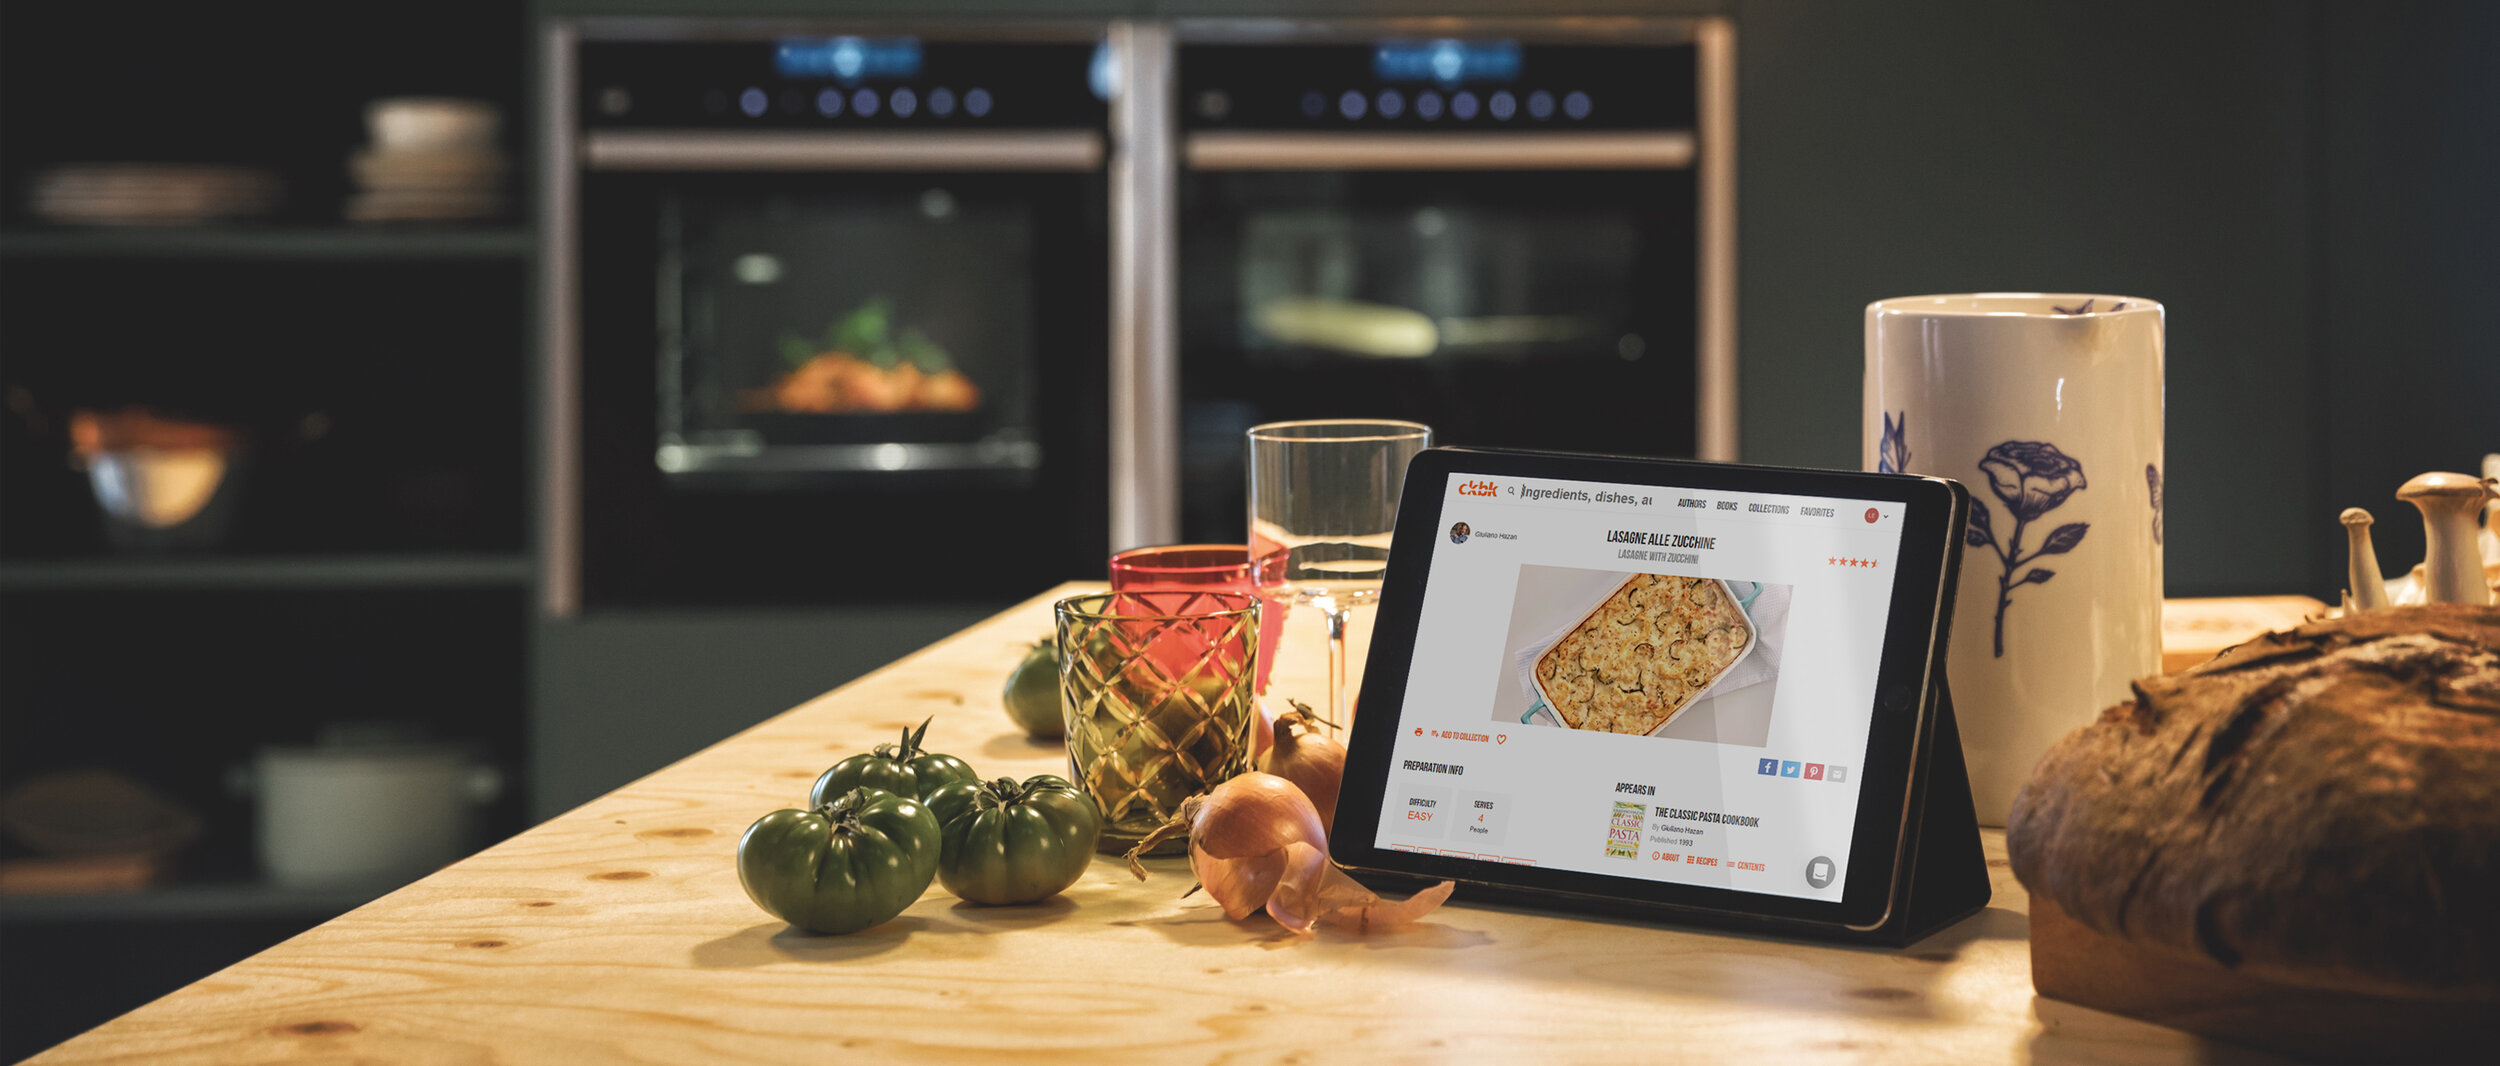 The new ckbk app is designed to link seamlessly with your new smart oven, making cooking that little bit easier.